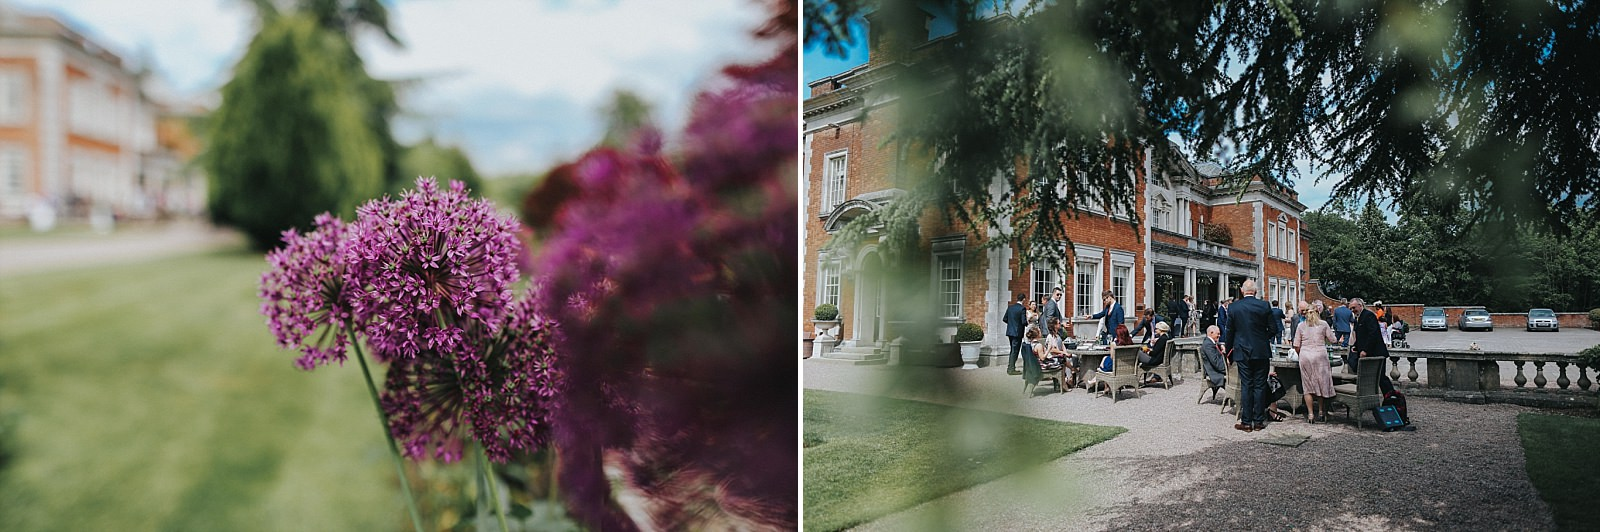 eaves hall wedding photographer captures the grounds